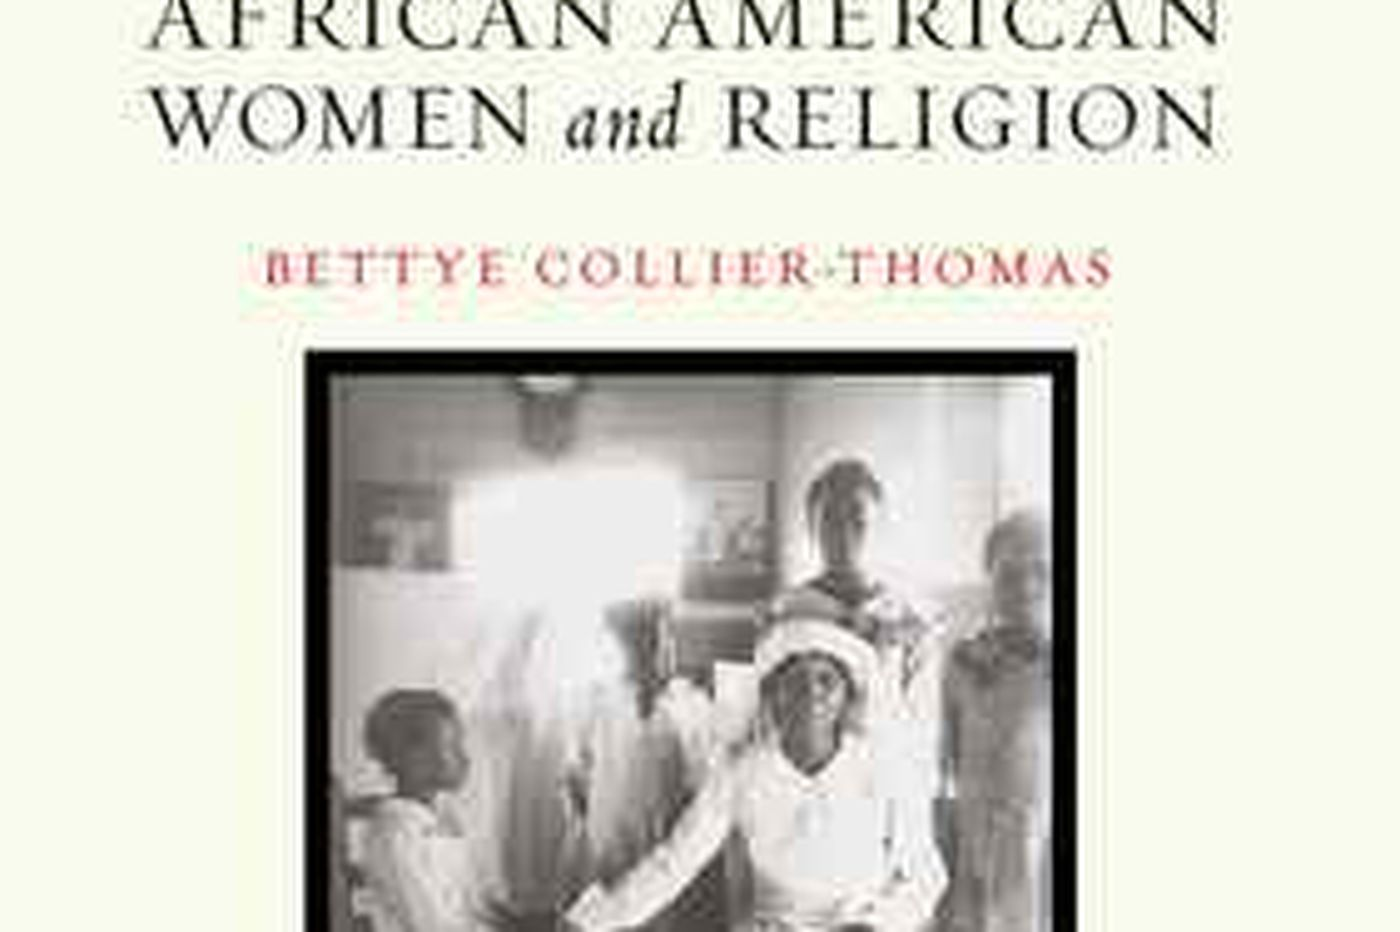 Black women's influence of faith